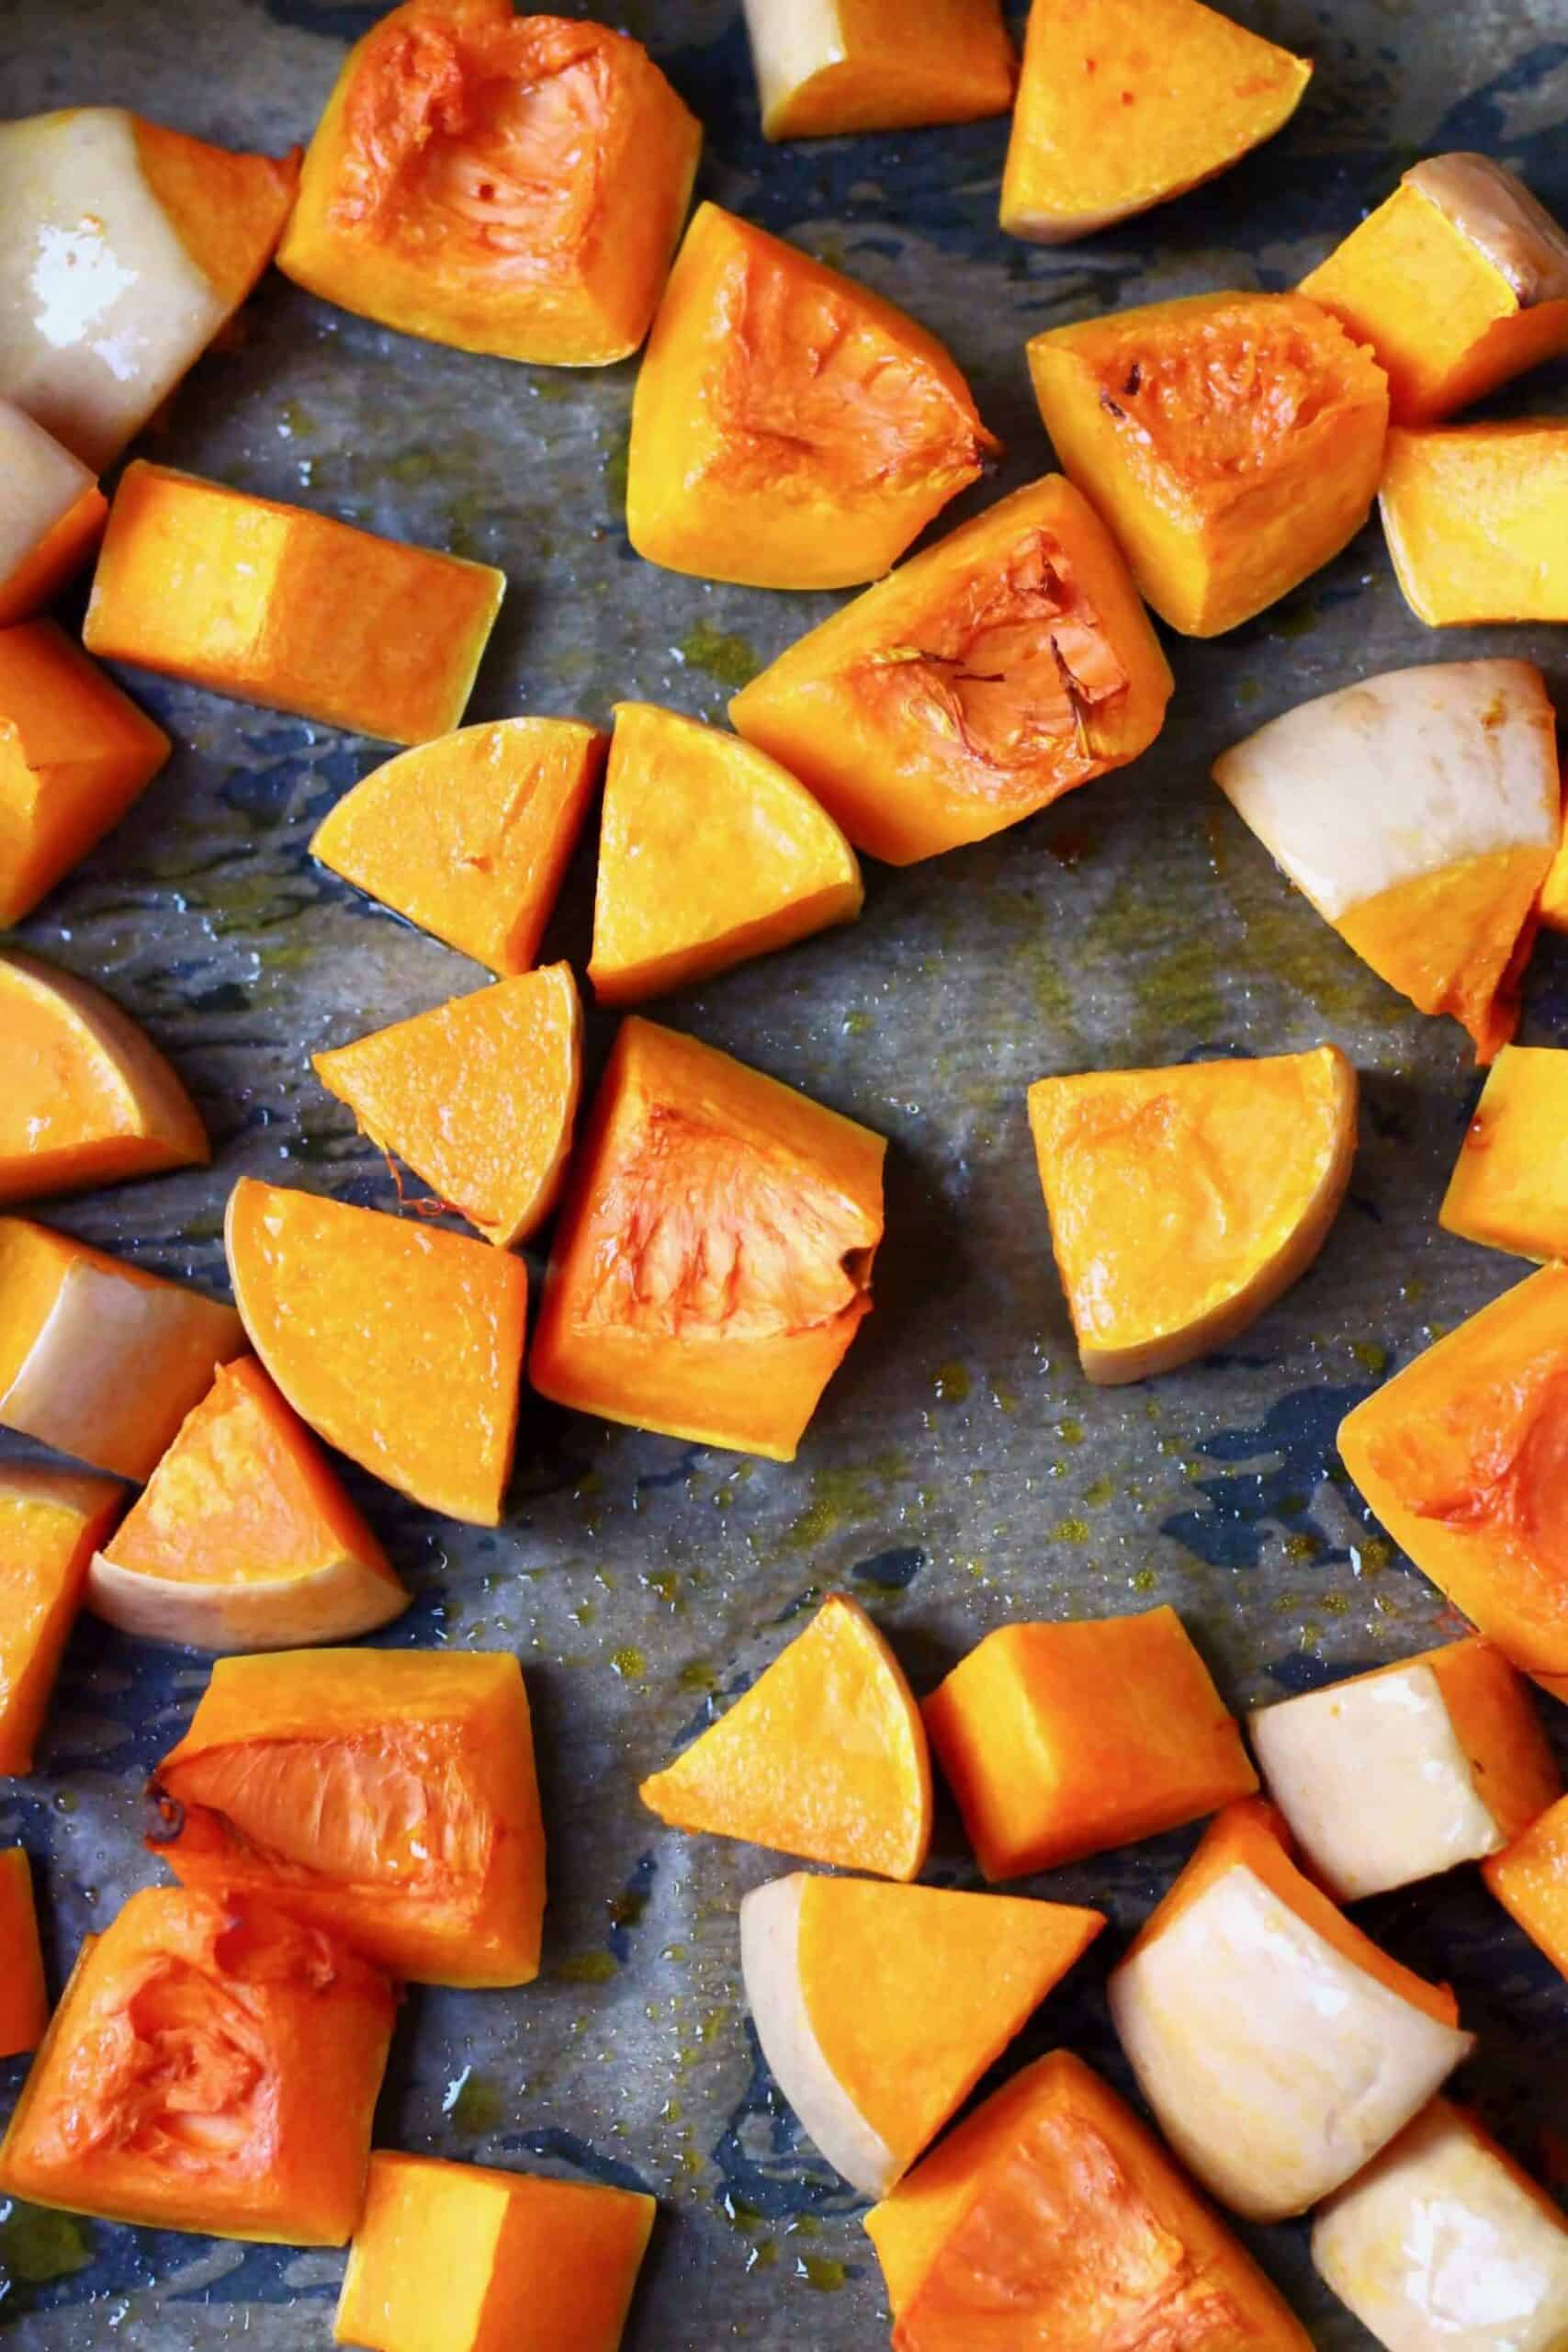 Pieces of roasted pumpkin on a baking tray lined with baking paper